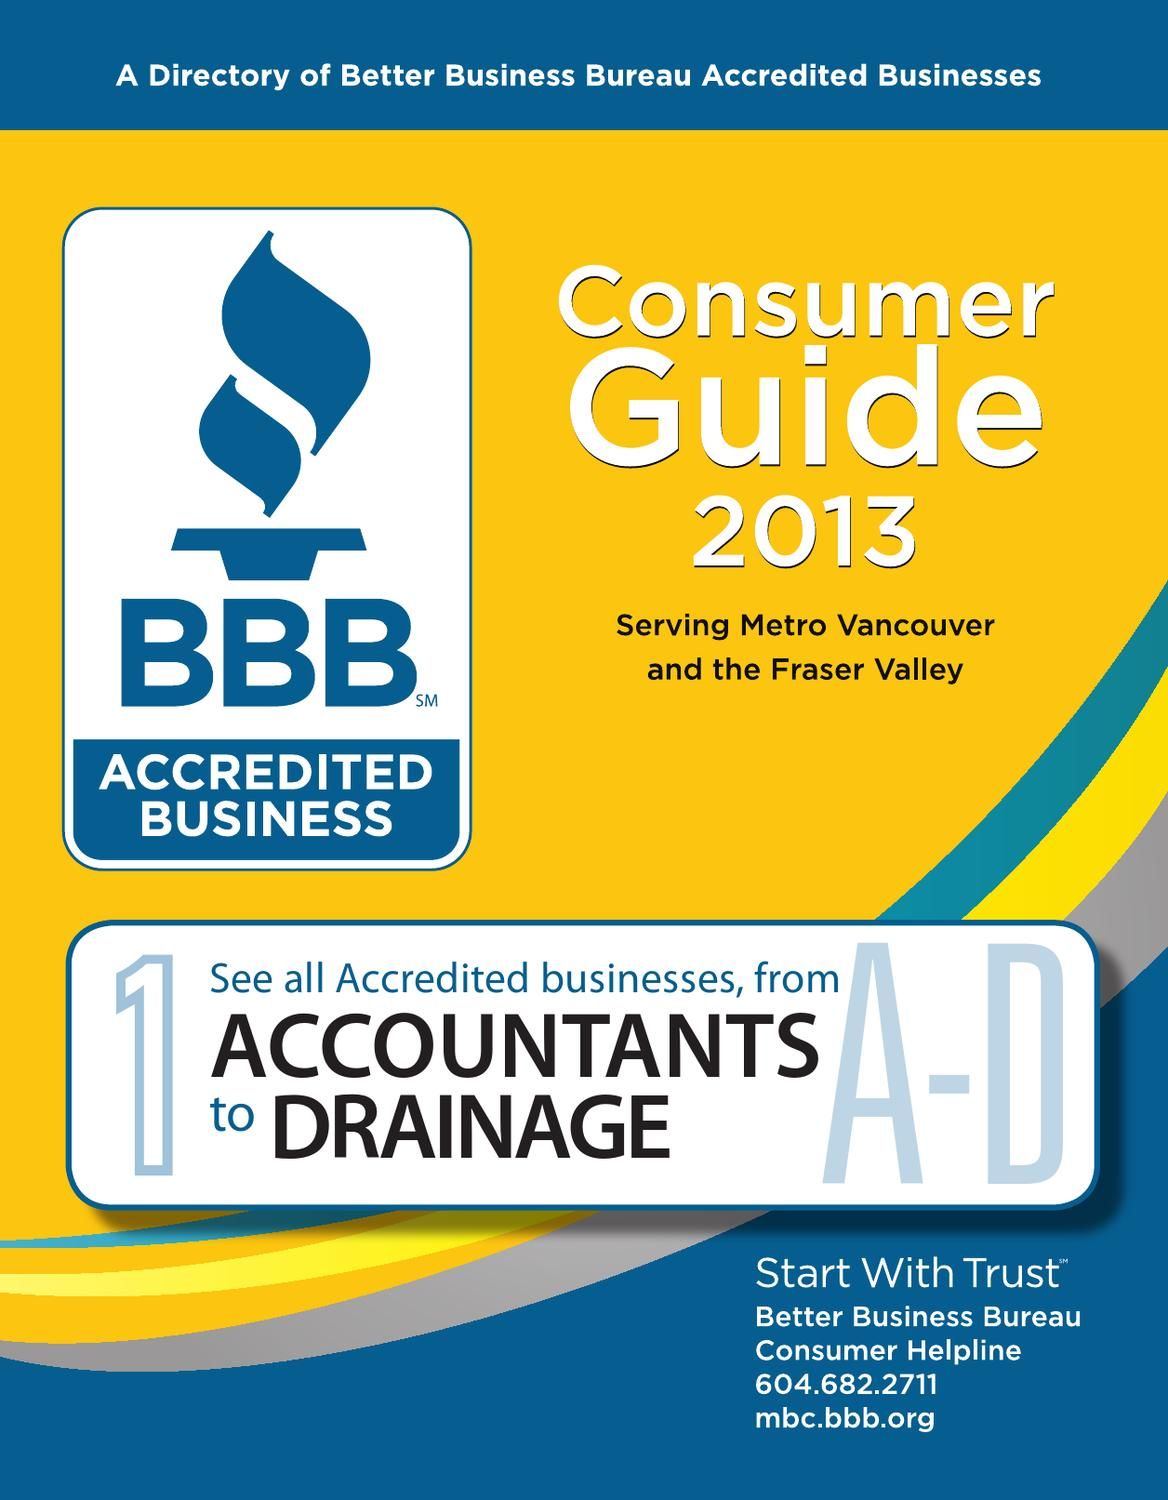 ce8f1475029 BBB Consumer Guide 2013 A-D by Business in Vancouver Media Group - issuu